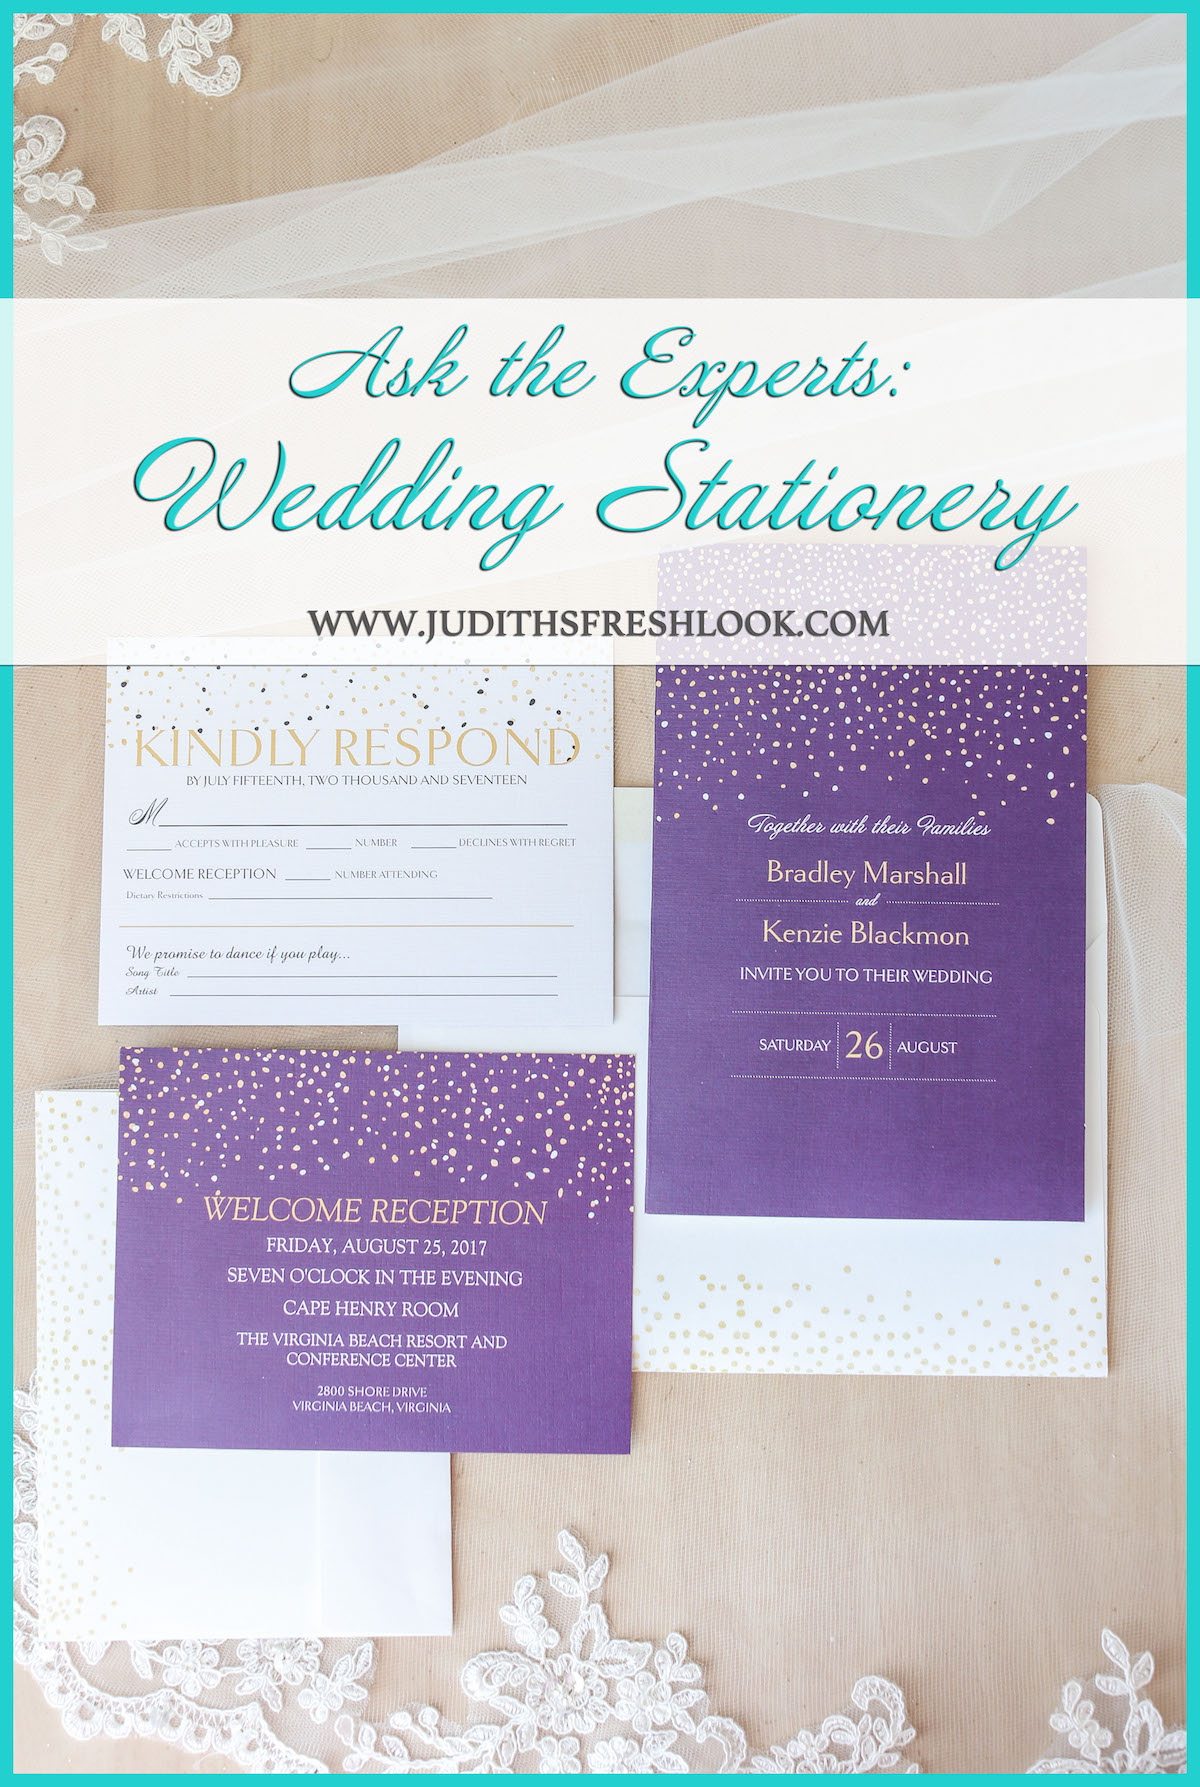 Wedding Stationery – What the Pros Want You to Know